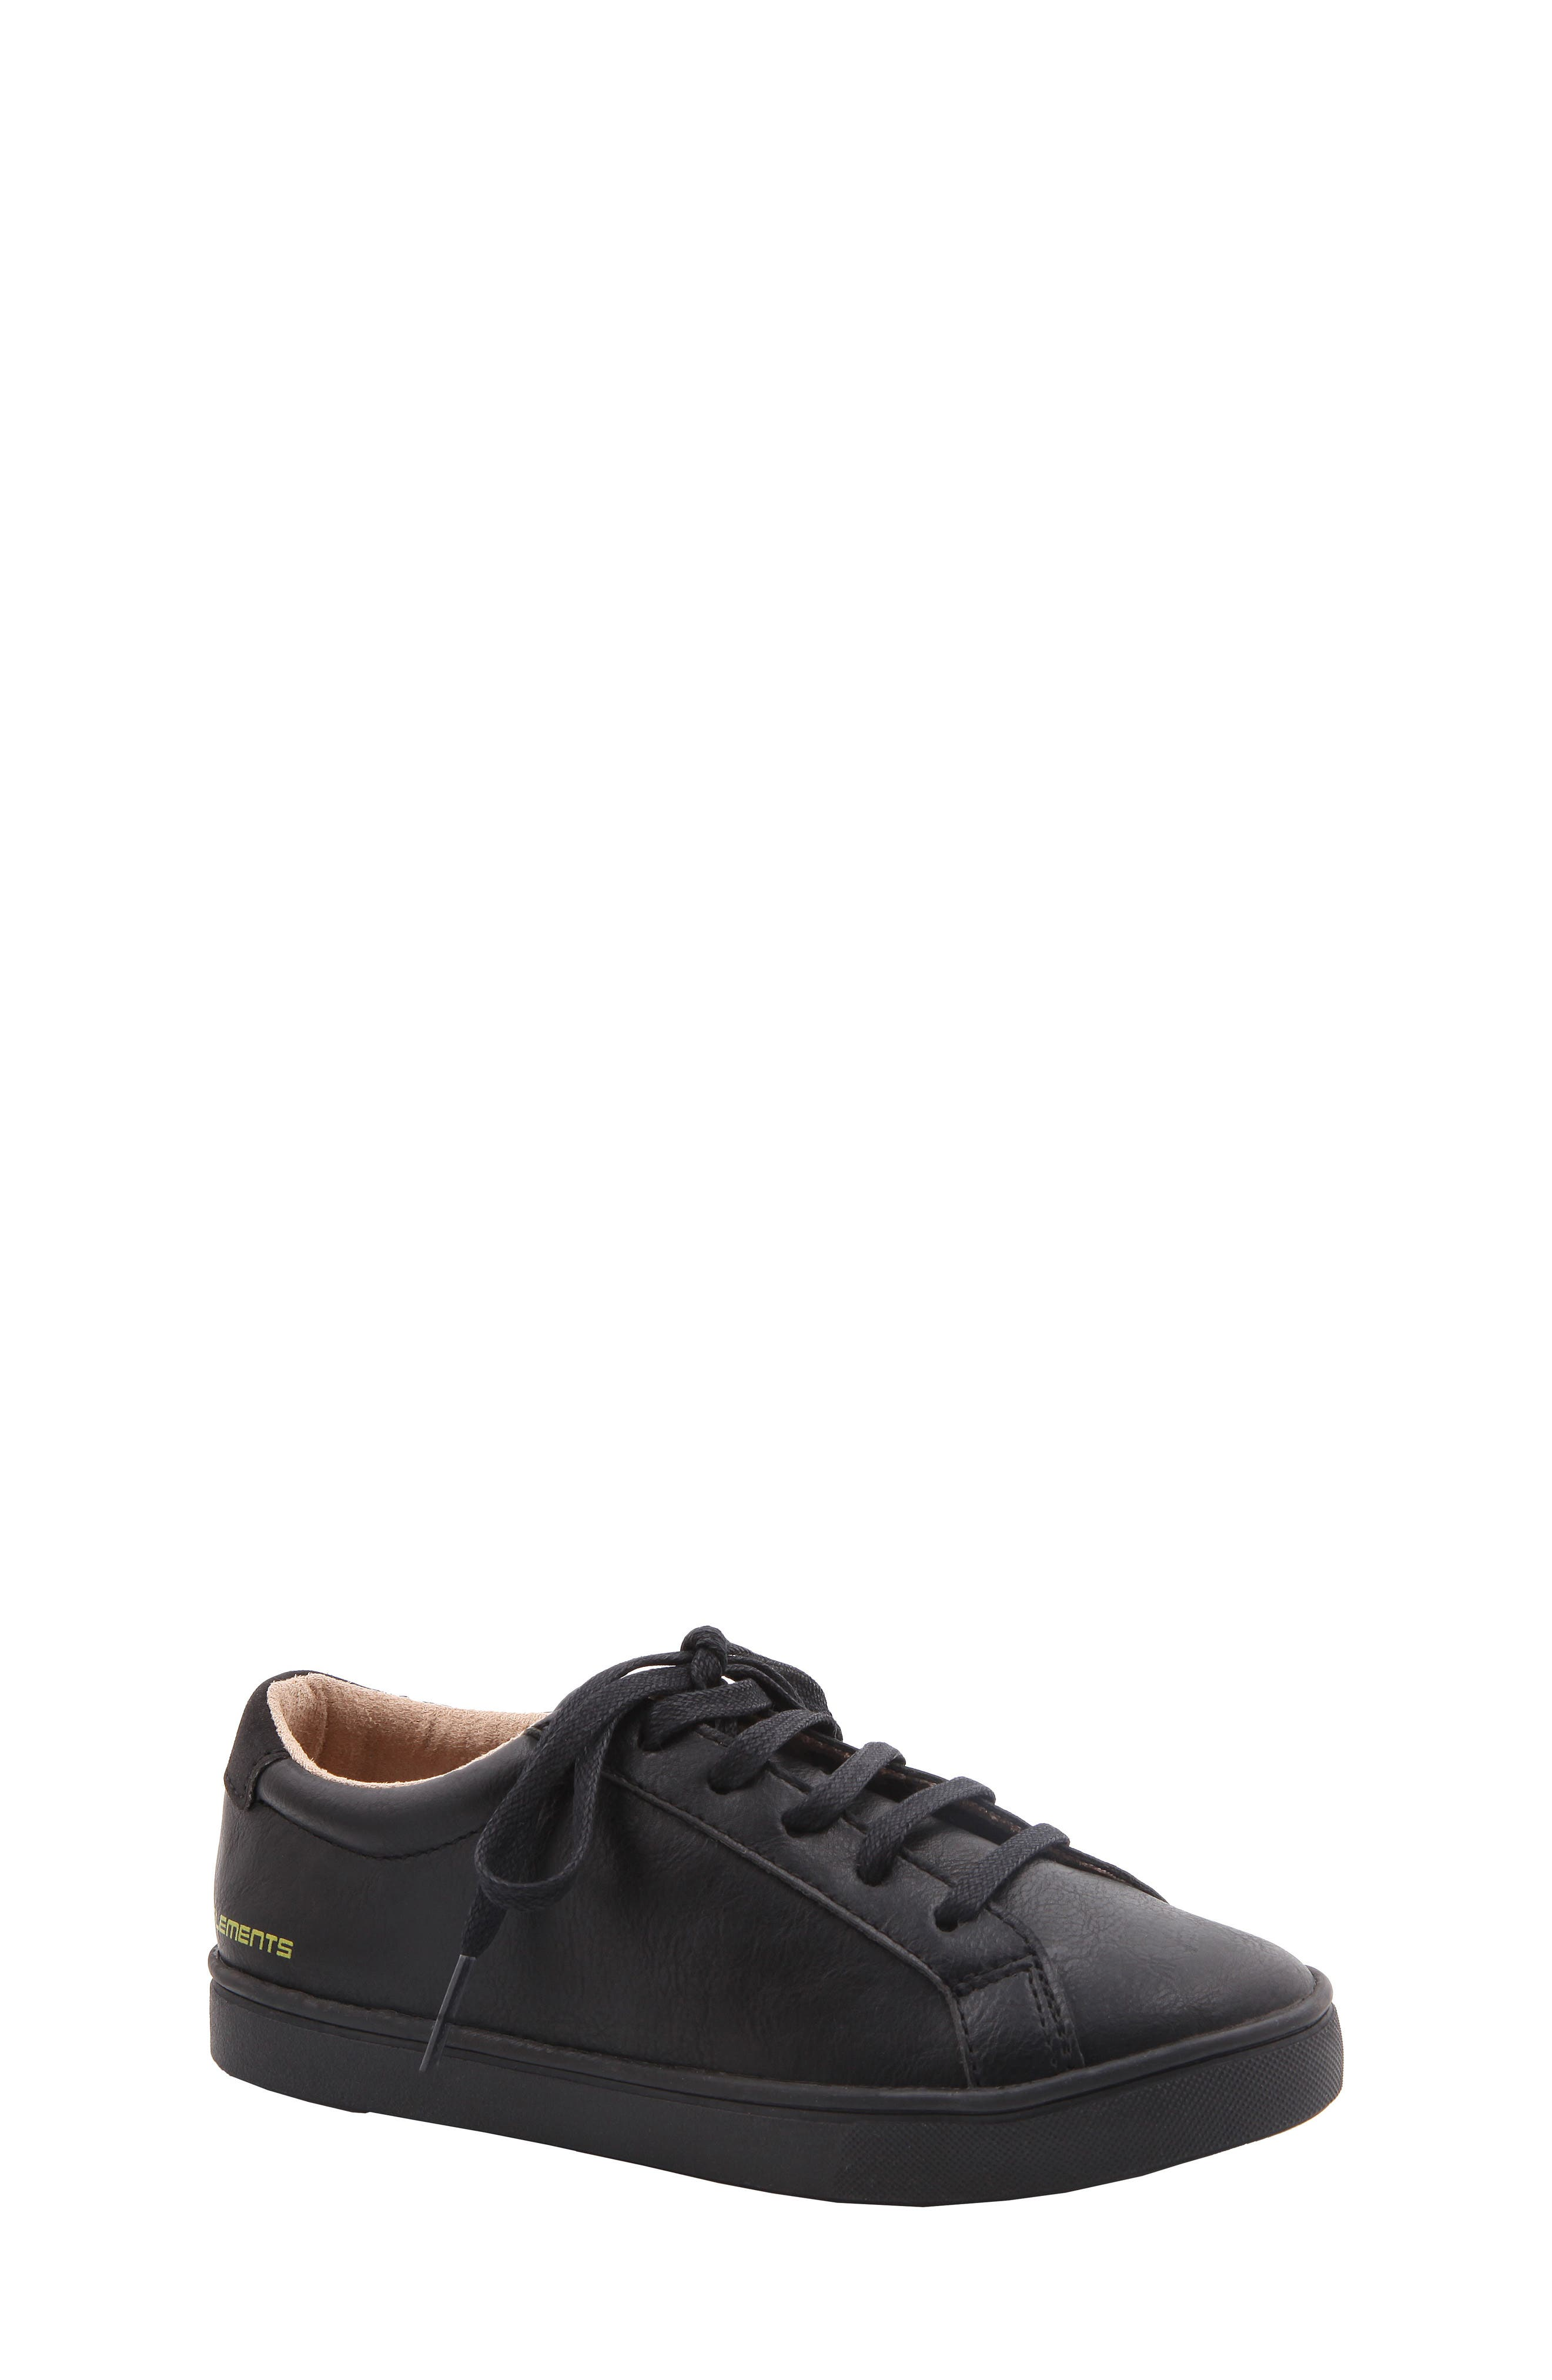 Chaz Sneaker,                         Main,                         color, 003